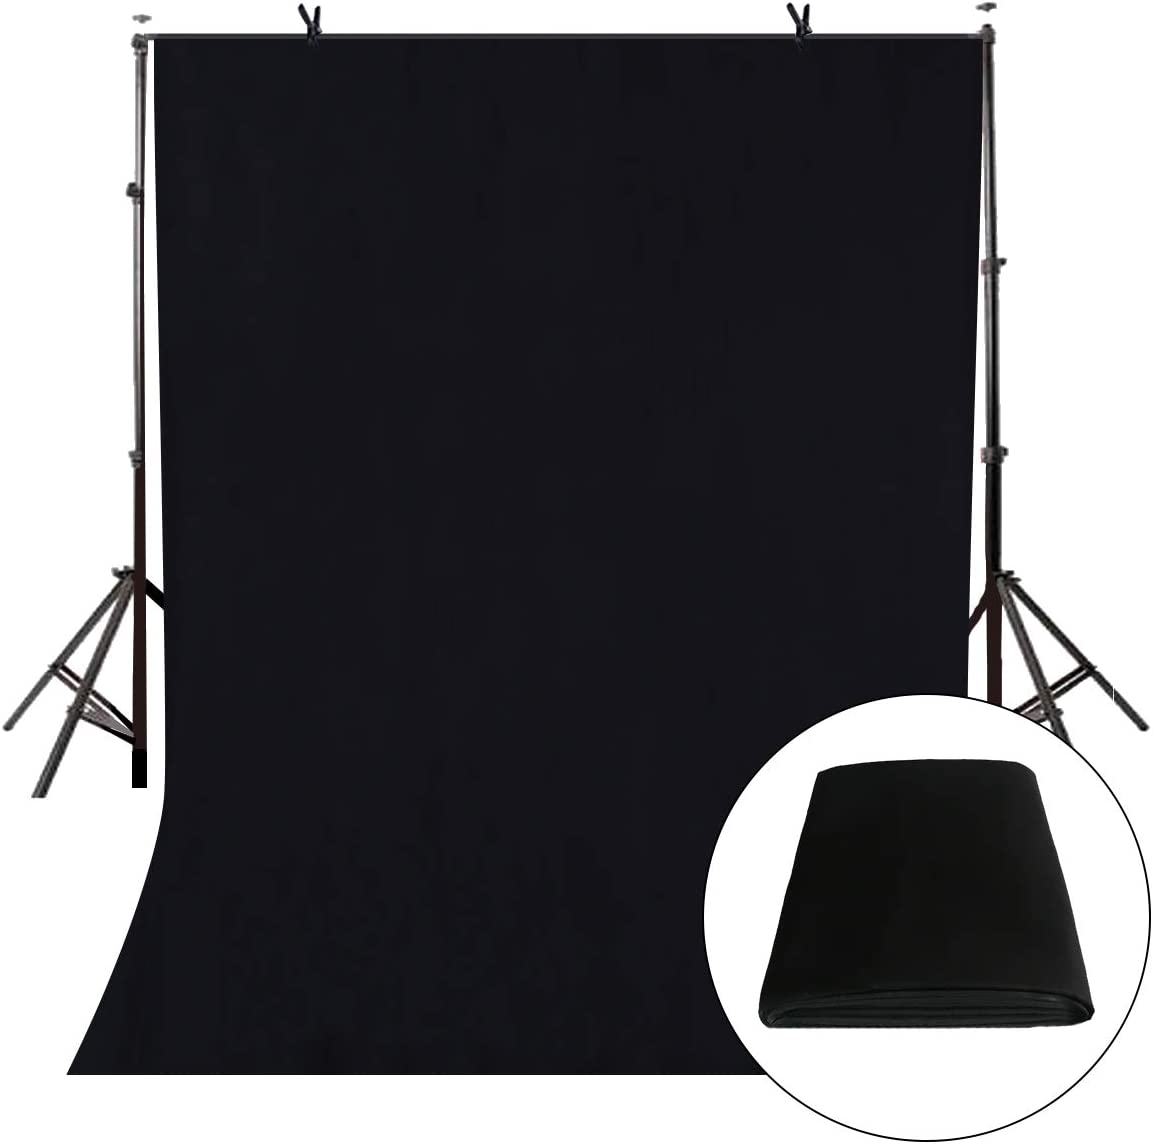 LYLYCTY Black Screen Key 5x7ft Backdrop Soft Pure White Studio Background ID Photo Photography Backdrop Photo Backdrops Customized Studio Photography Backdrop Background Studio Props LY165